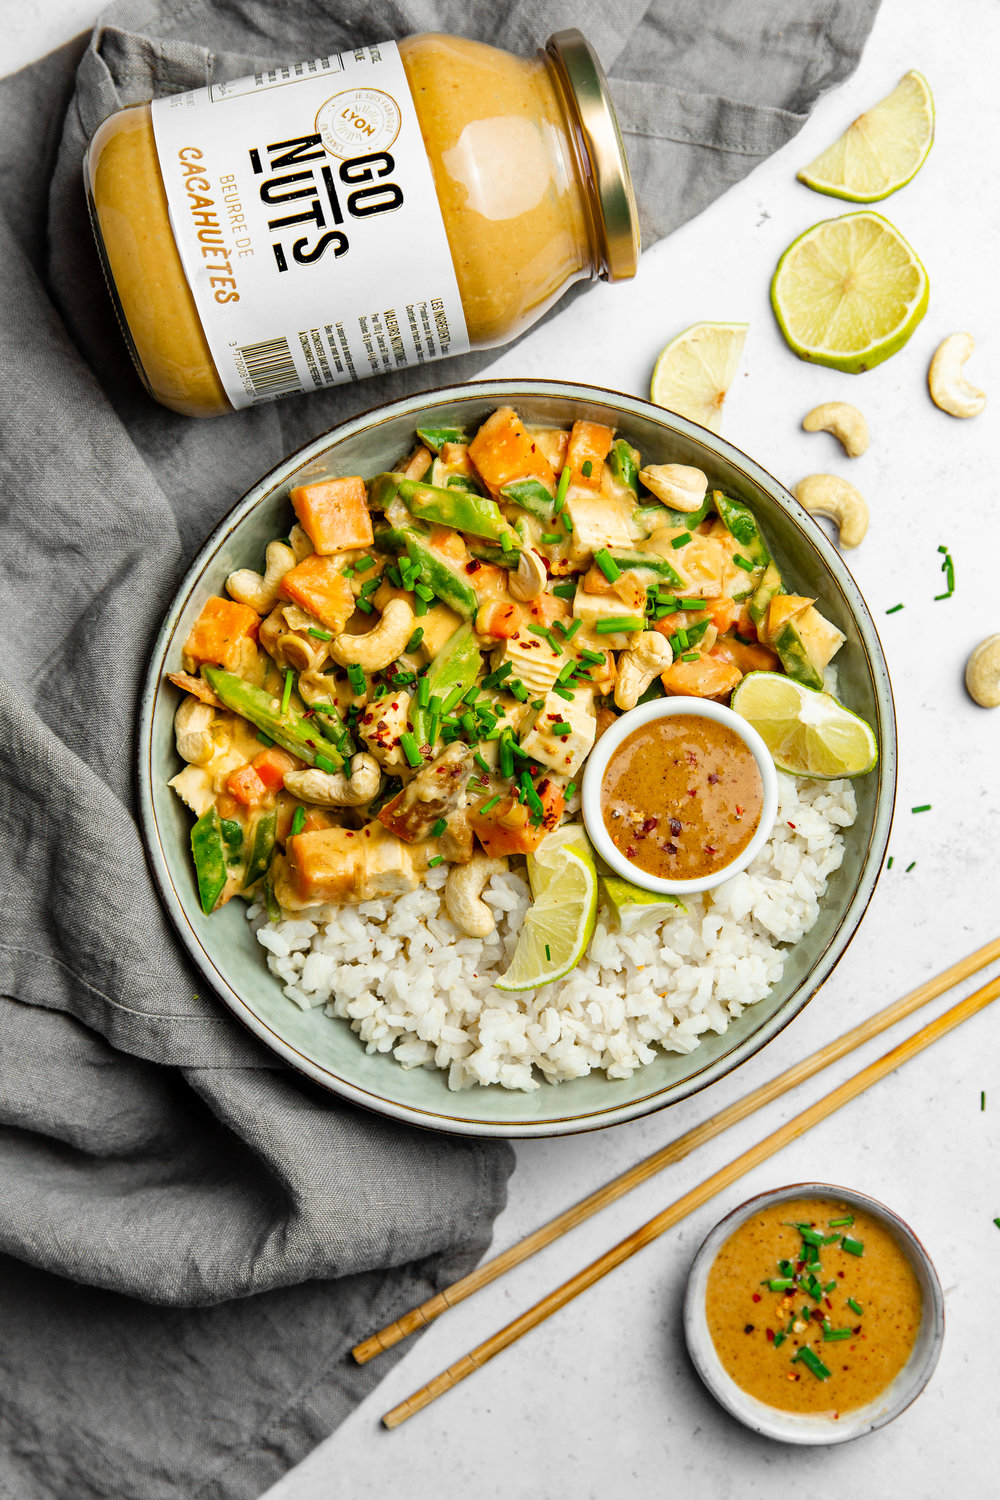 GONUTS-Recette-Curry-4.jpg